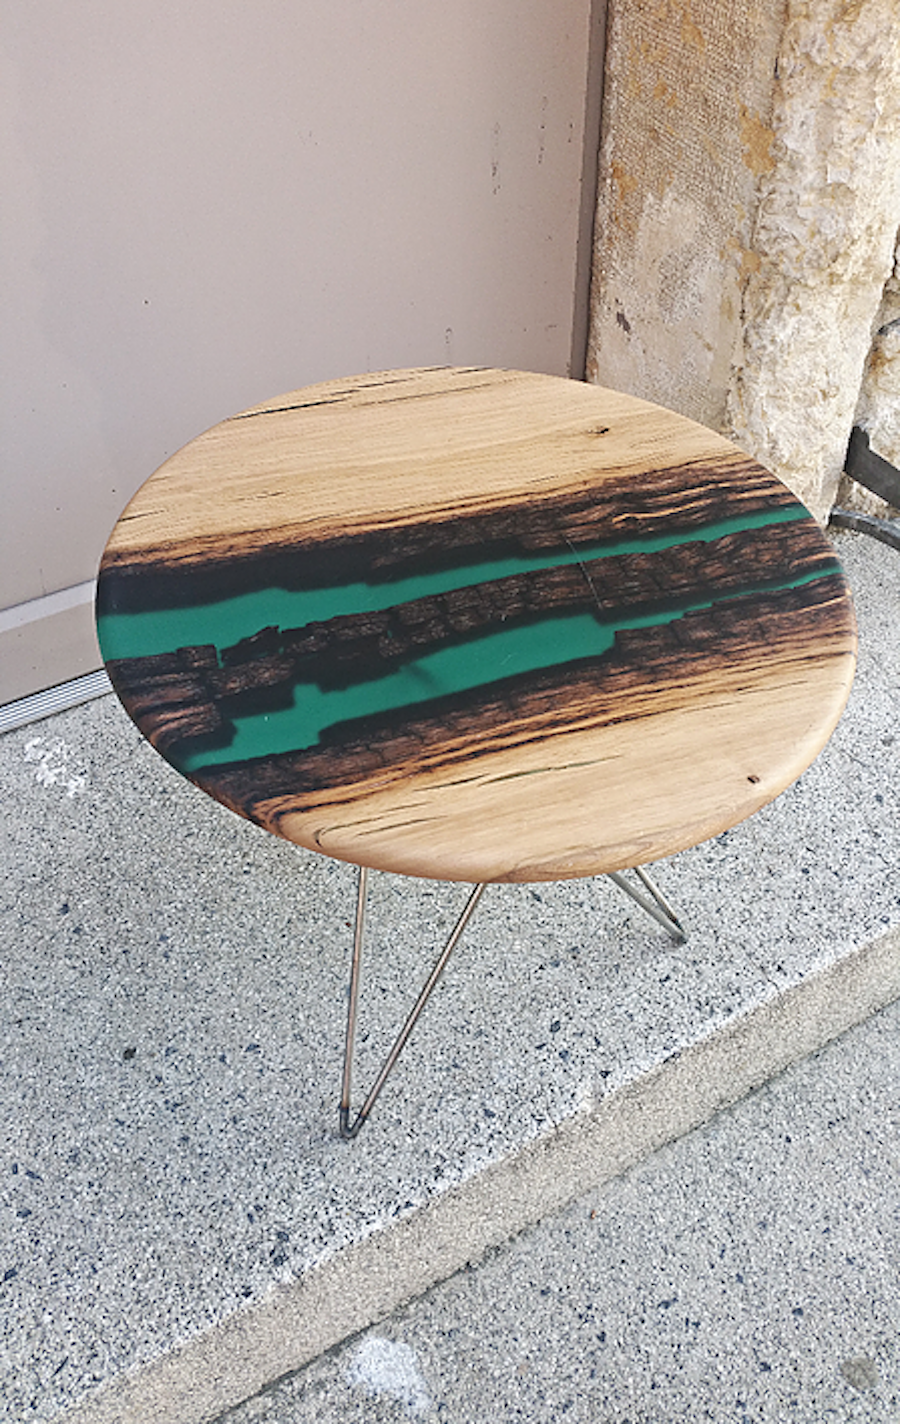 Reclaimed teak wood cracked resin side tables youtube - Beautiful Resin Wood Design Tables